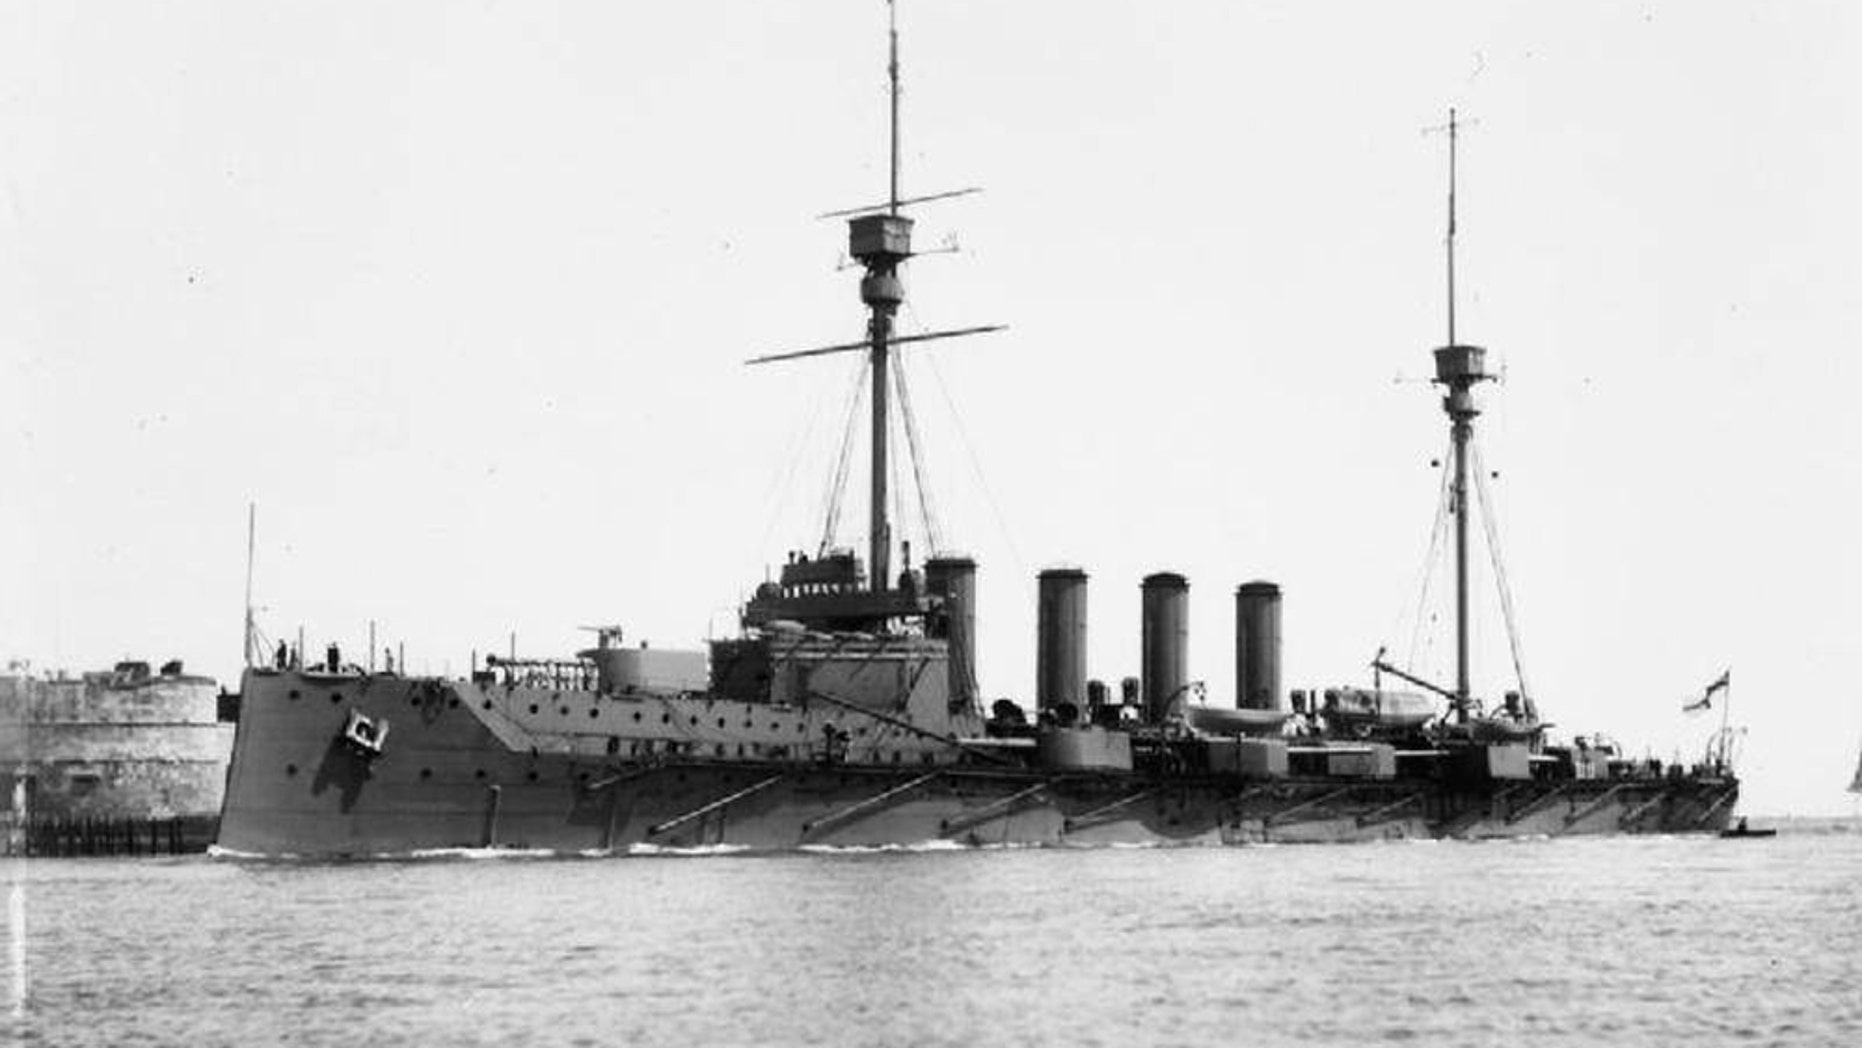 The HMS Warrior was one of 151 British warships in the North Sea on May 31 and June 1, 1916, when a German fleet of 99 warships attempted to break out from the British naval blockade of the German coast.